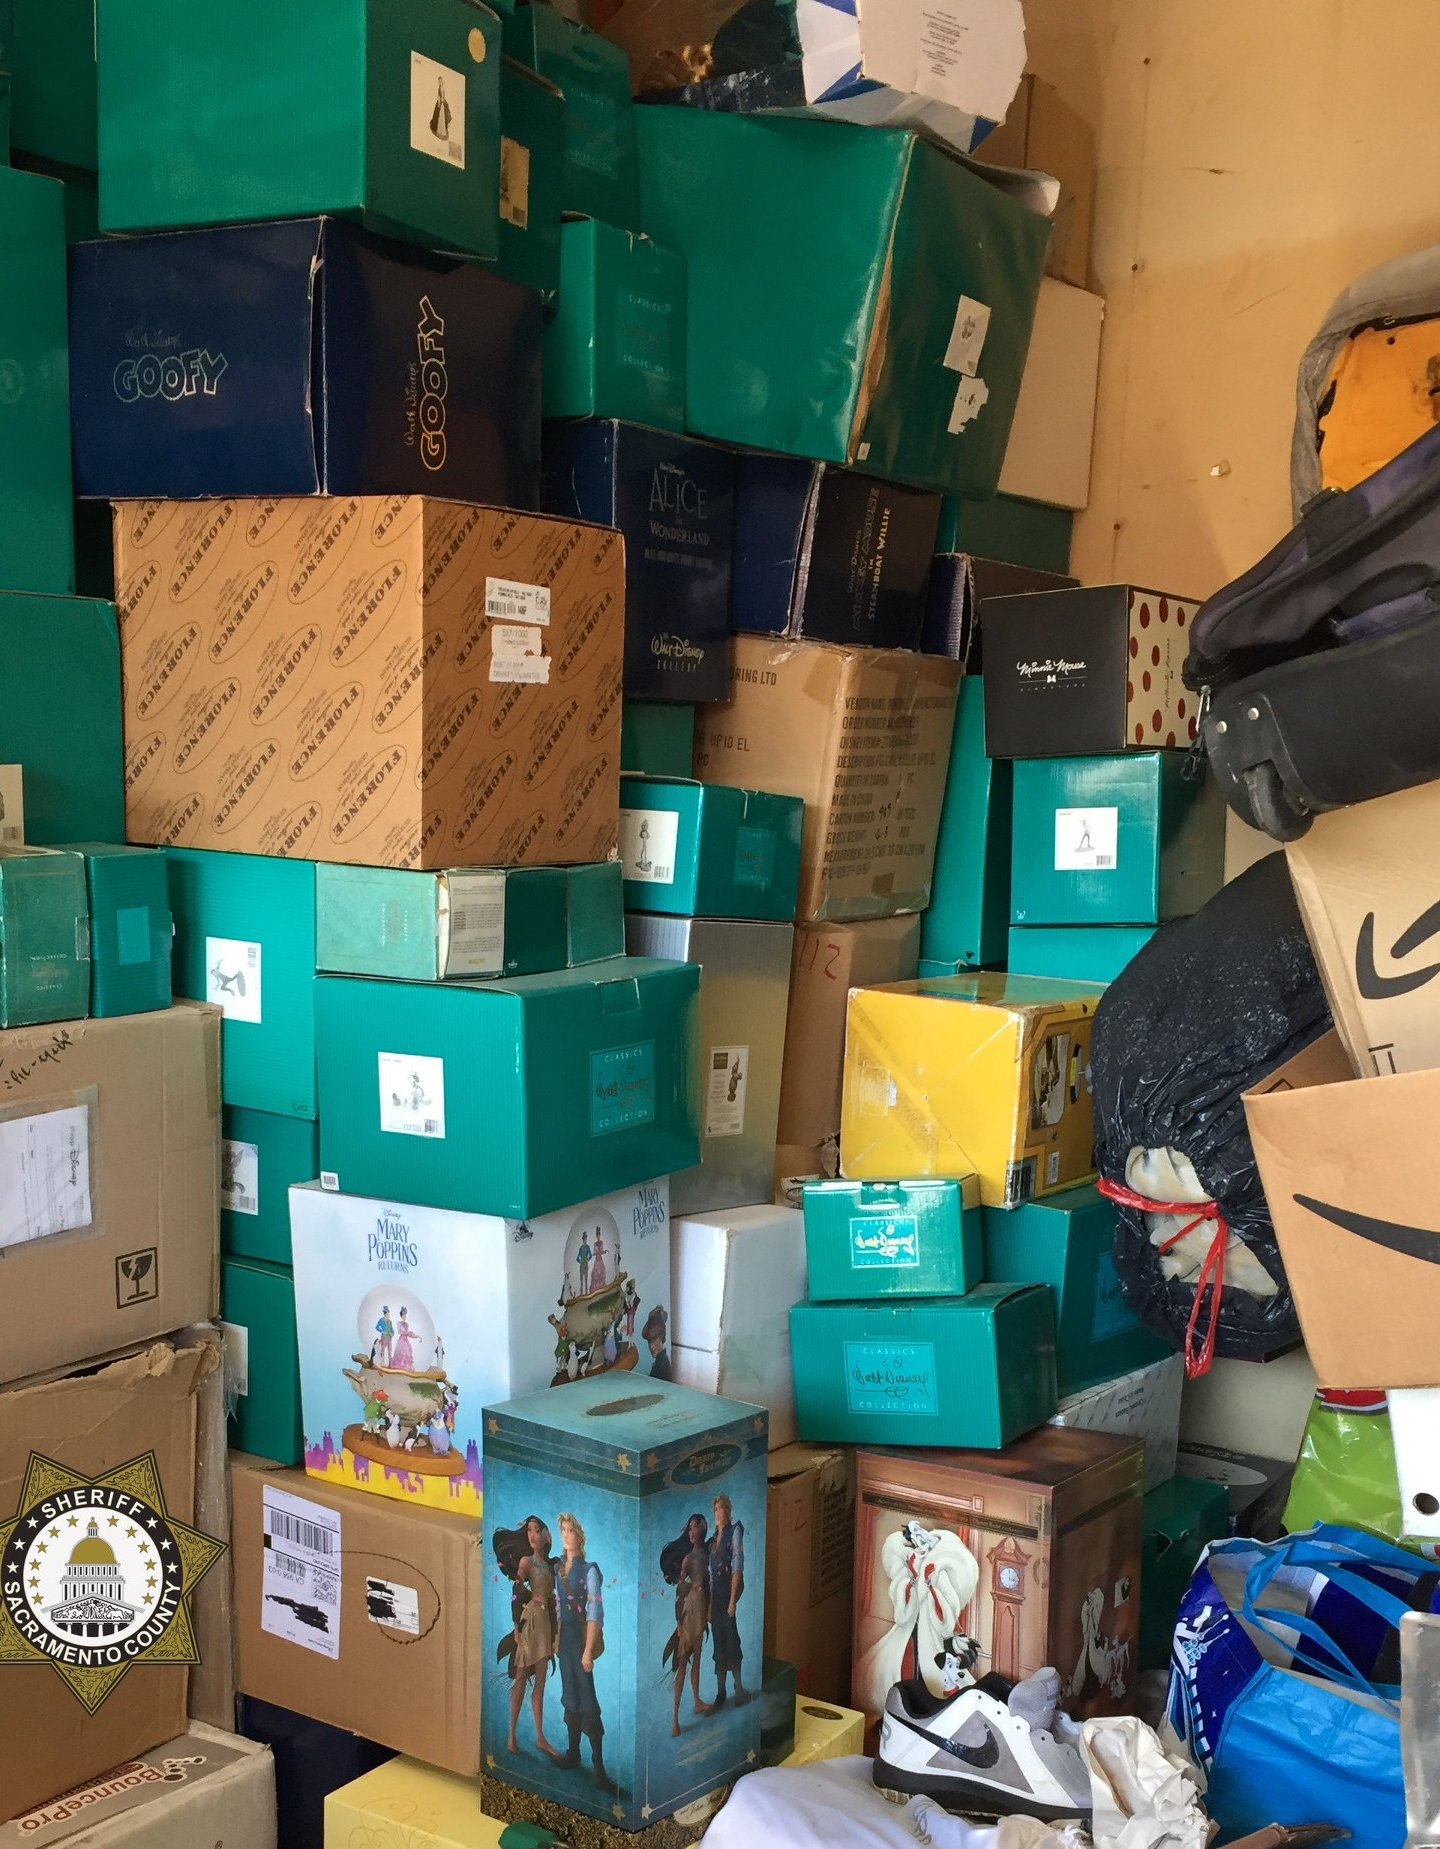 Authorities found thousands of dollars' worth of stolen Disney memorabilia in a northern Sacramento storage unit on June 30, 2020.(Sacramento County Sheriff's Department)